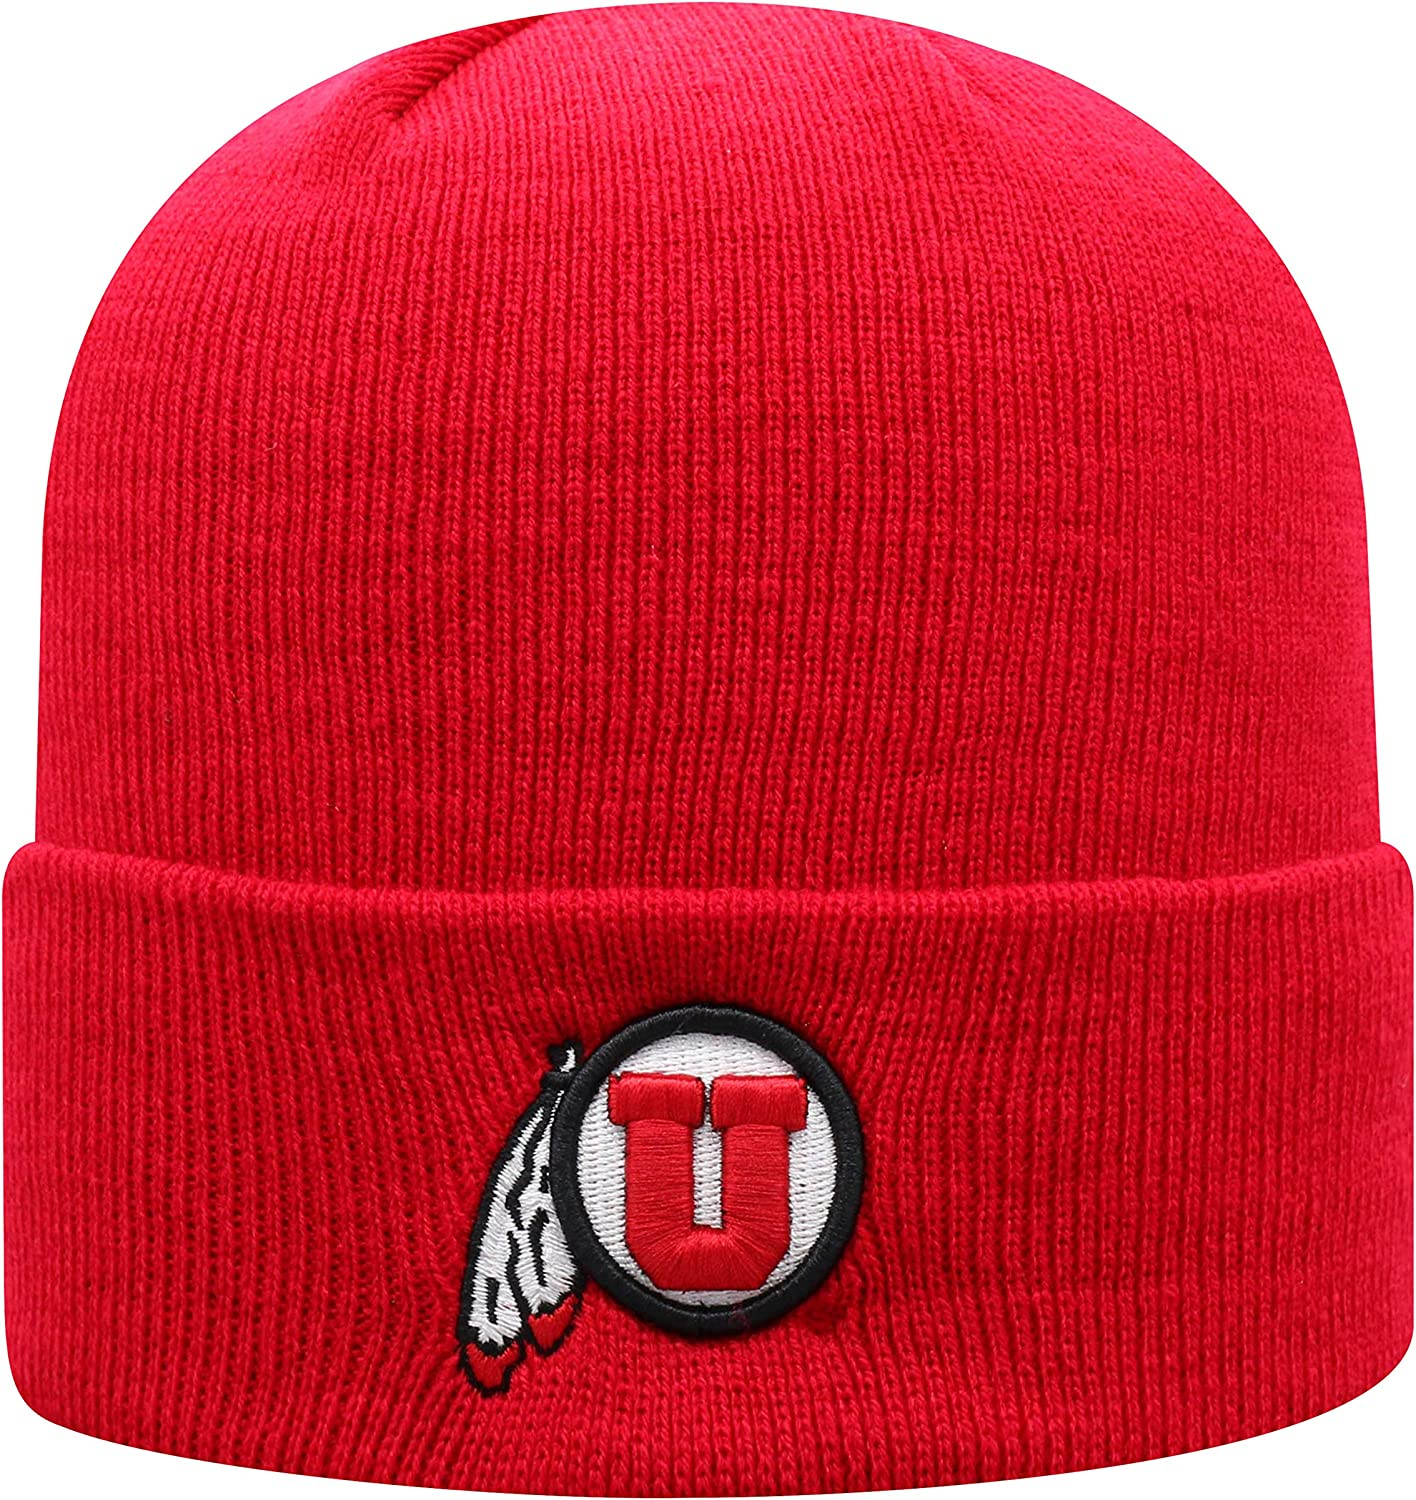 Top of the World NCAA Mens Cuffed Knit Hat Team Icon